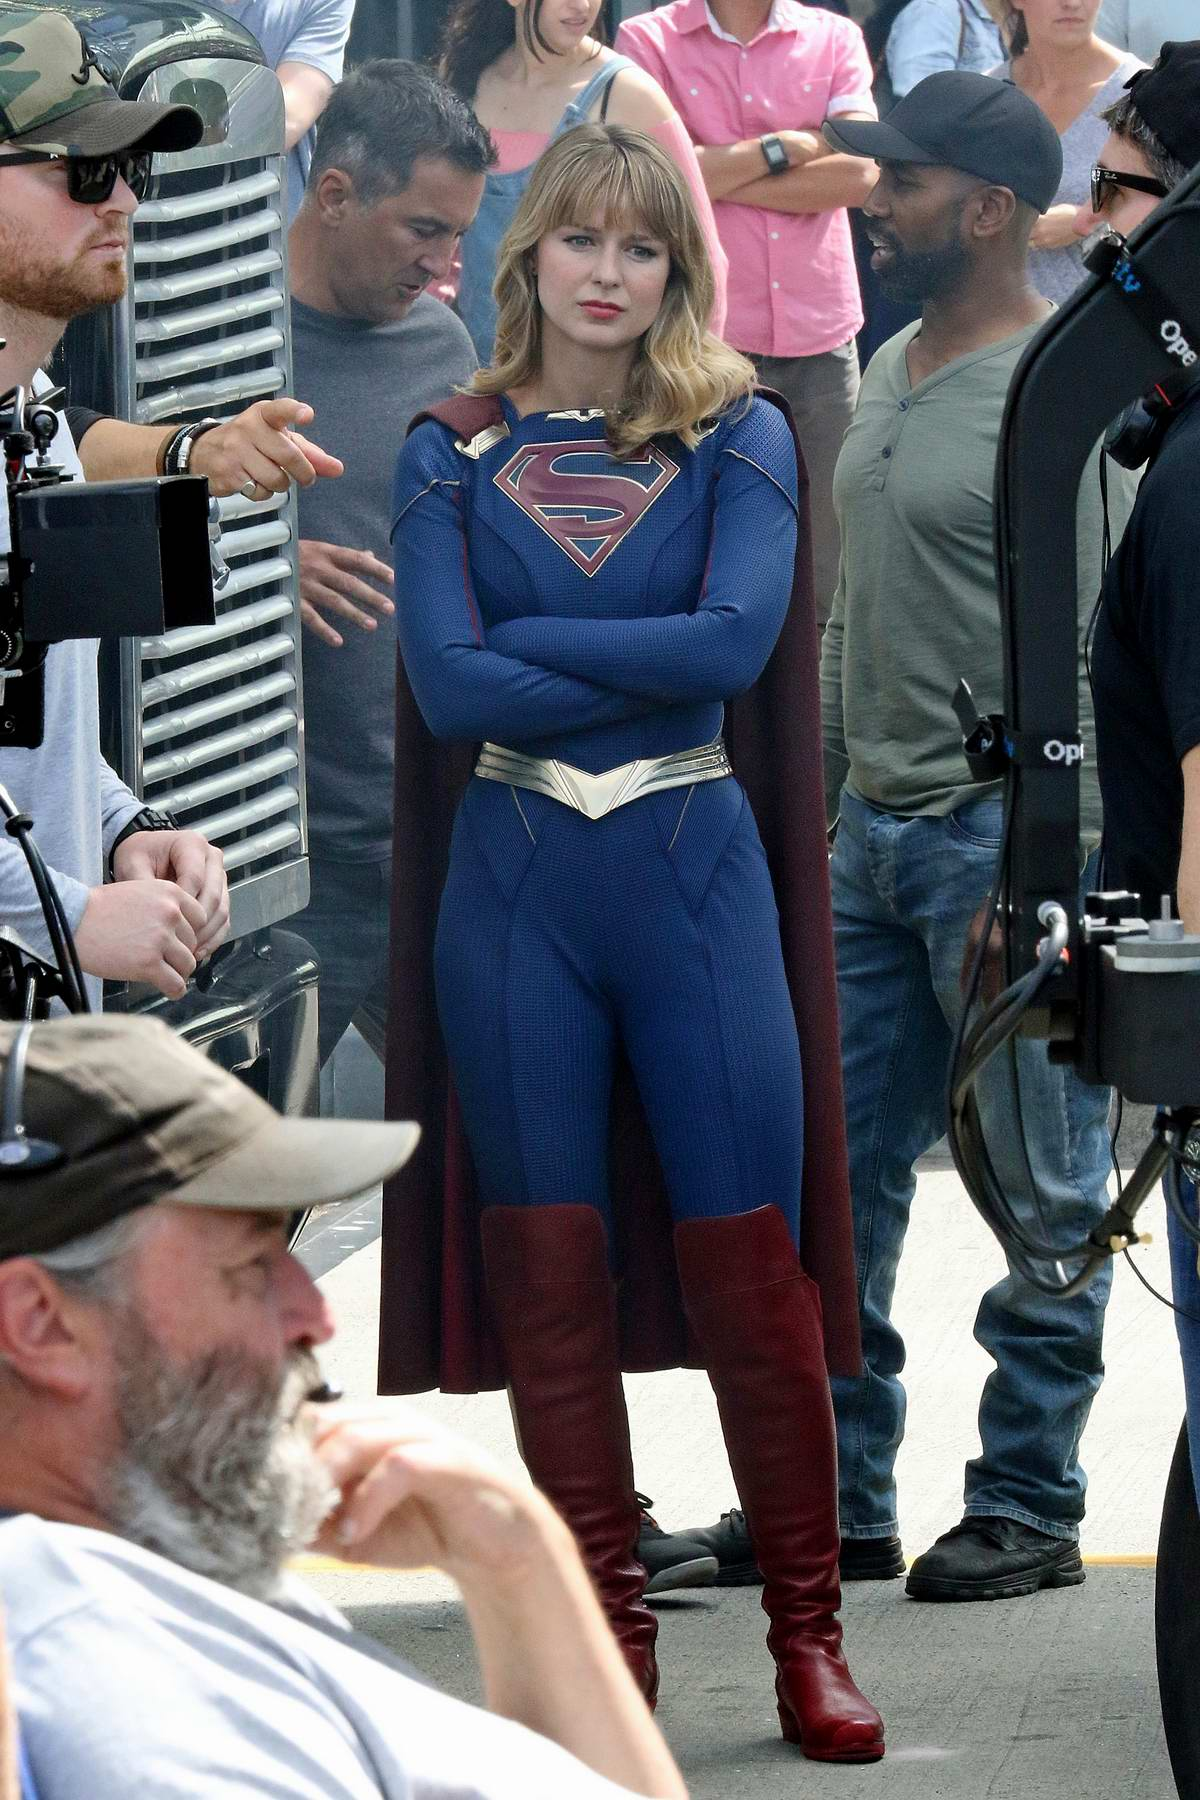 Melissa Benoist spotted in her Supergirl costume while on set of 'Supergirl' in Vancouver, Canada